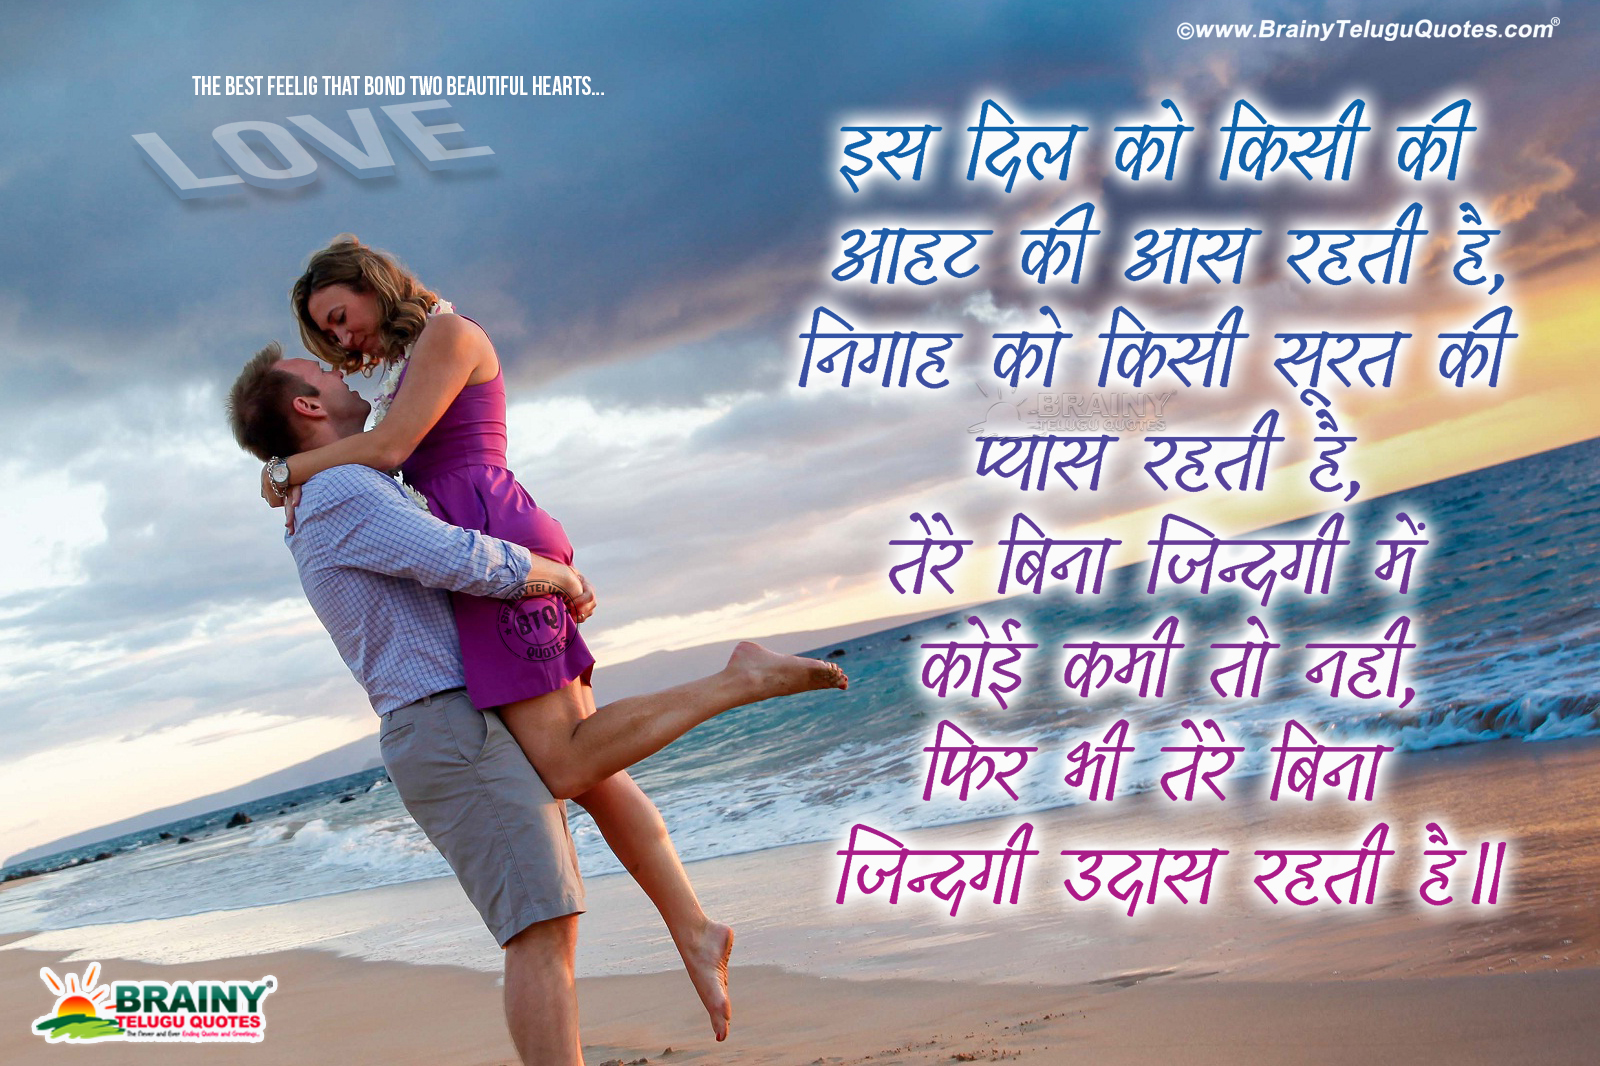 Romantic couple images with hindi quotes